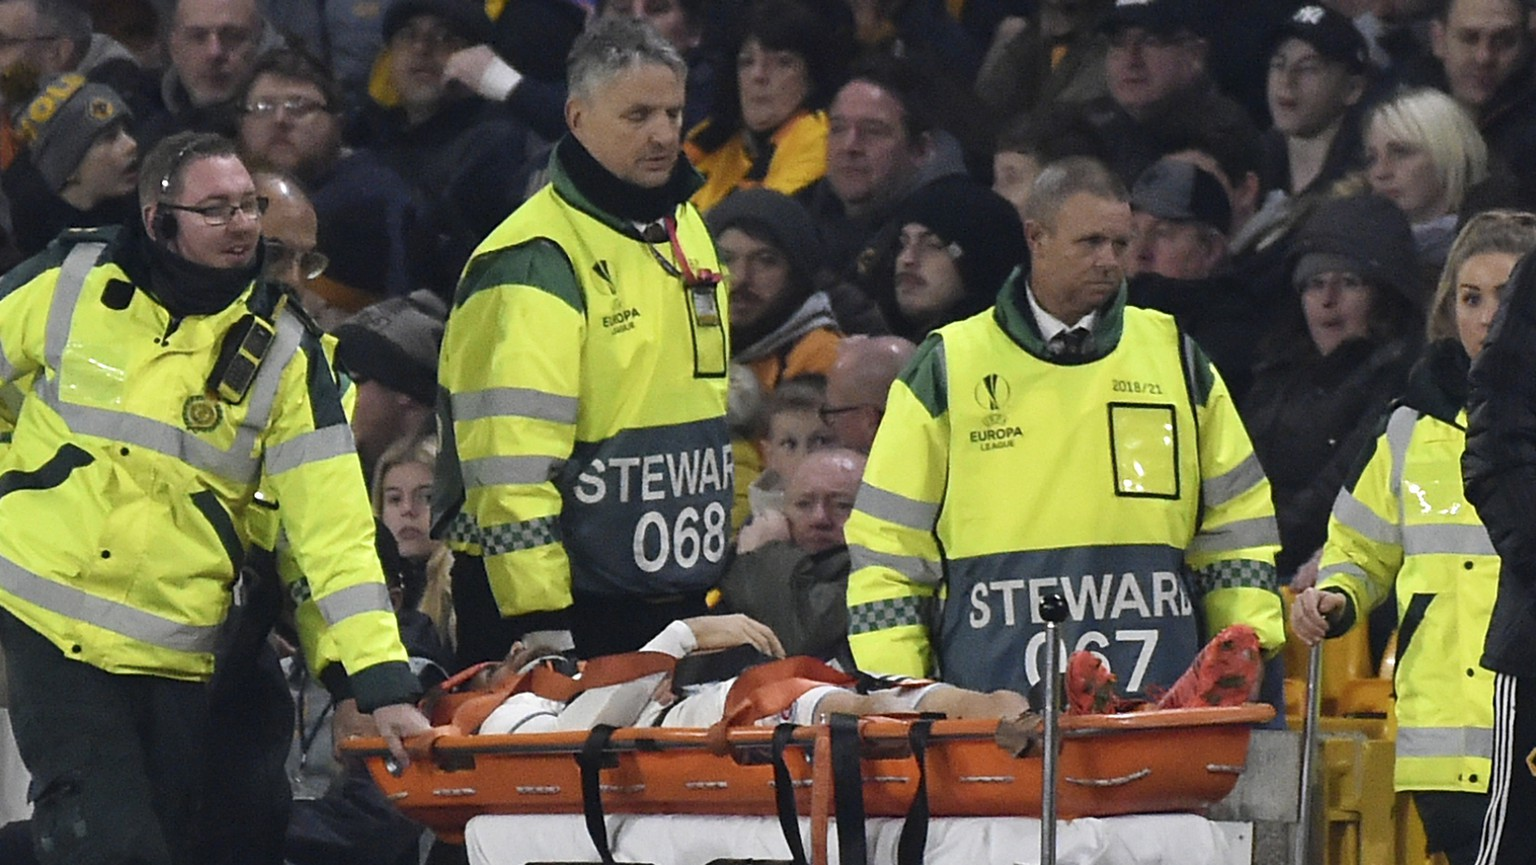 Slovan Bratislava's Kenan Bajric is carried from the pitch after injuring during the Europa League group K soccer match between Wolverhampton Wanderers and Slovan Bratislava at the Molineux Stadium, in Wolverhampton, England, Thursday, Nov. 7, 2019. (AP Photo/Rui Vieira)